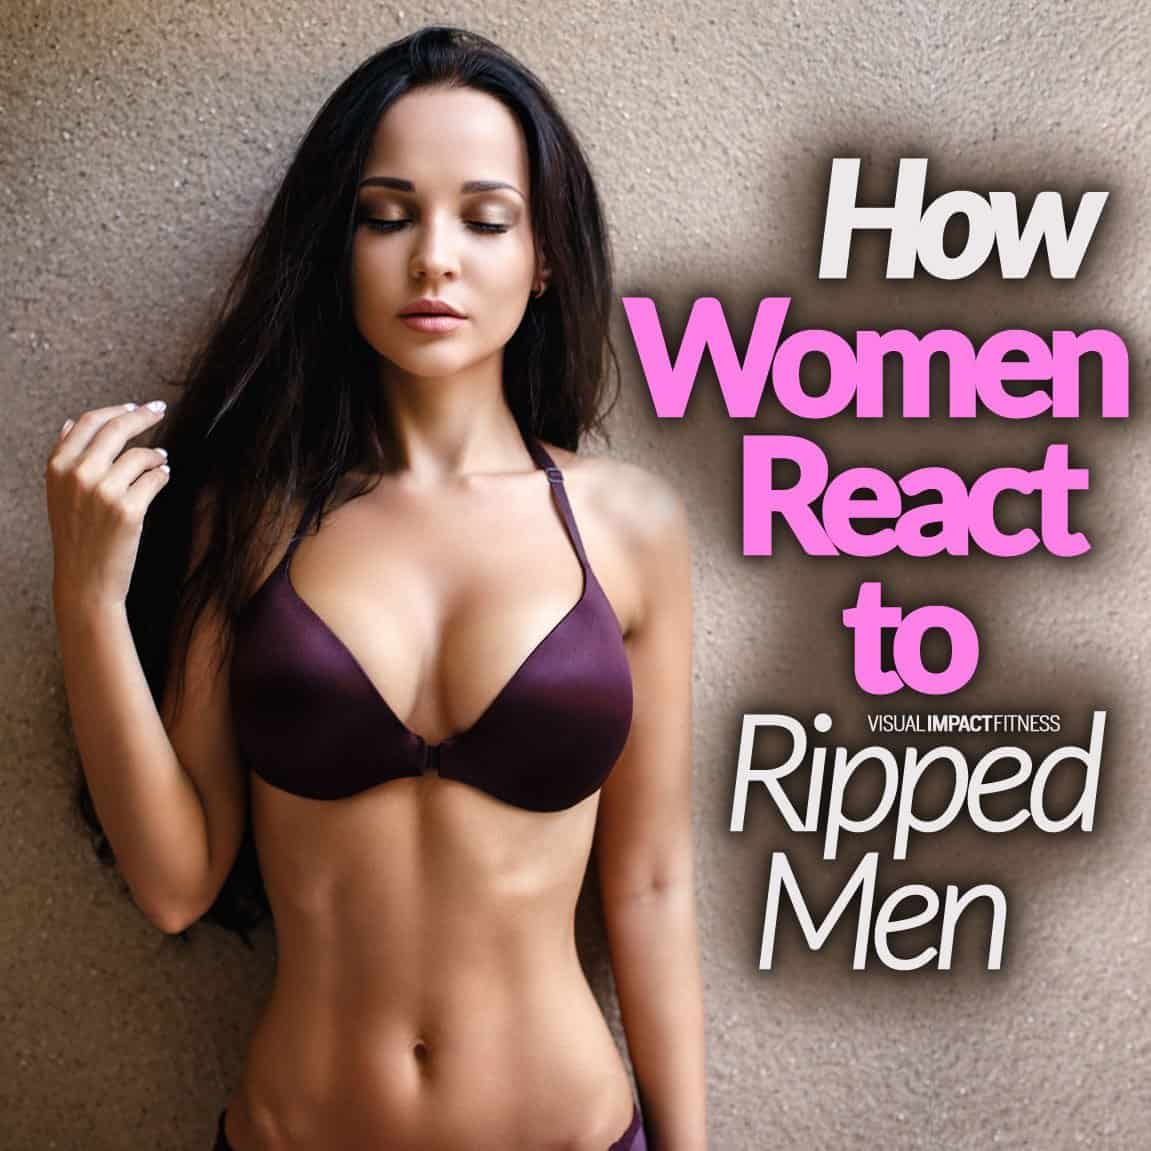 How Women React To Ripped Men